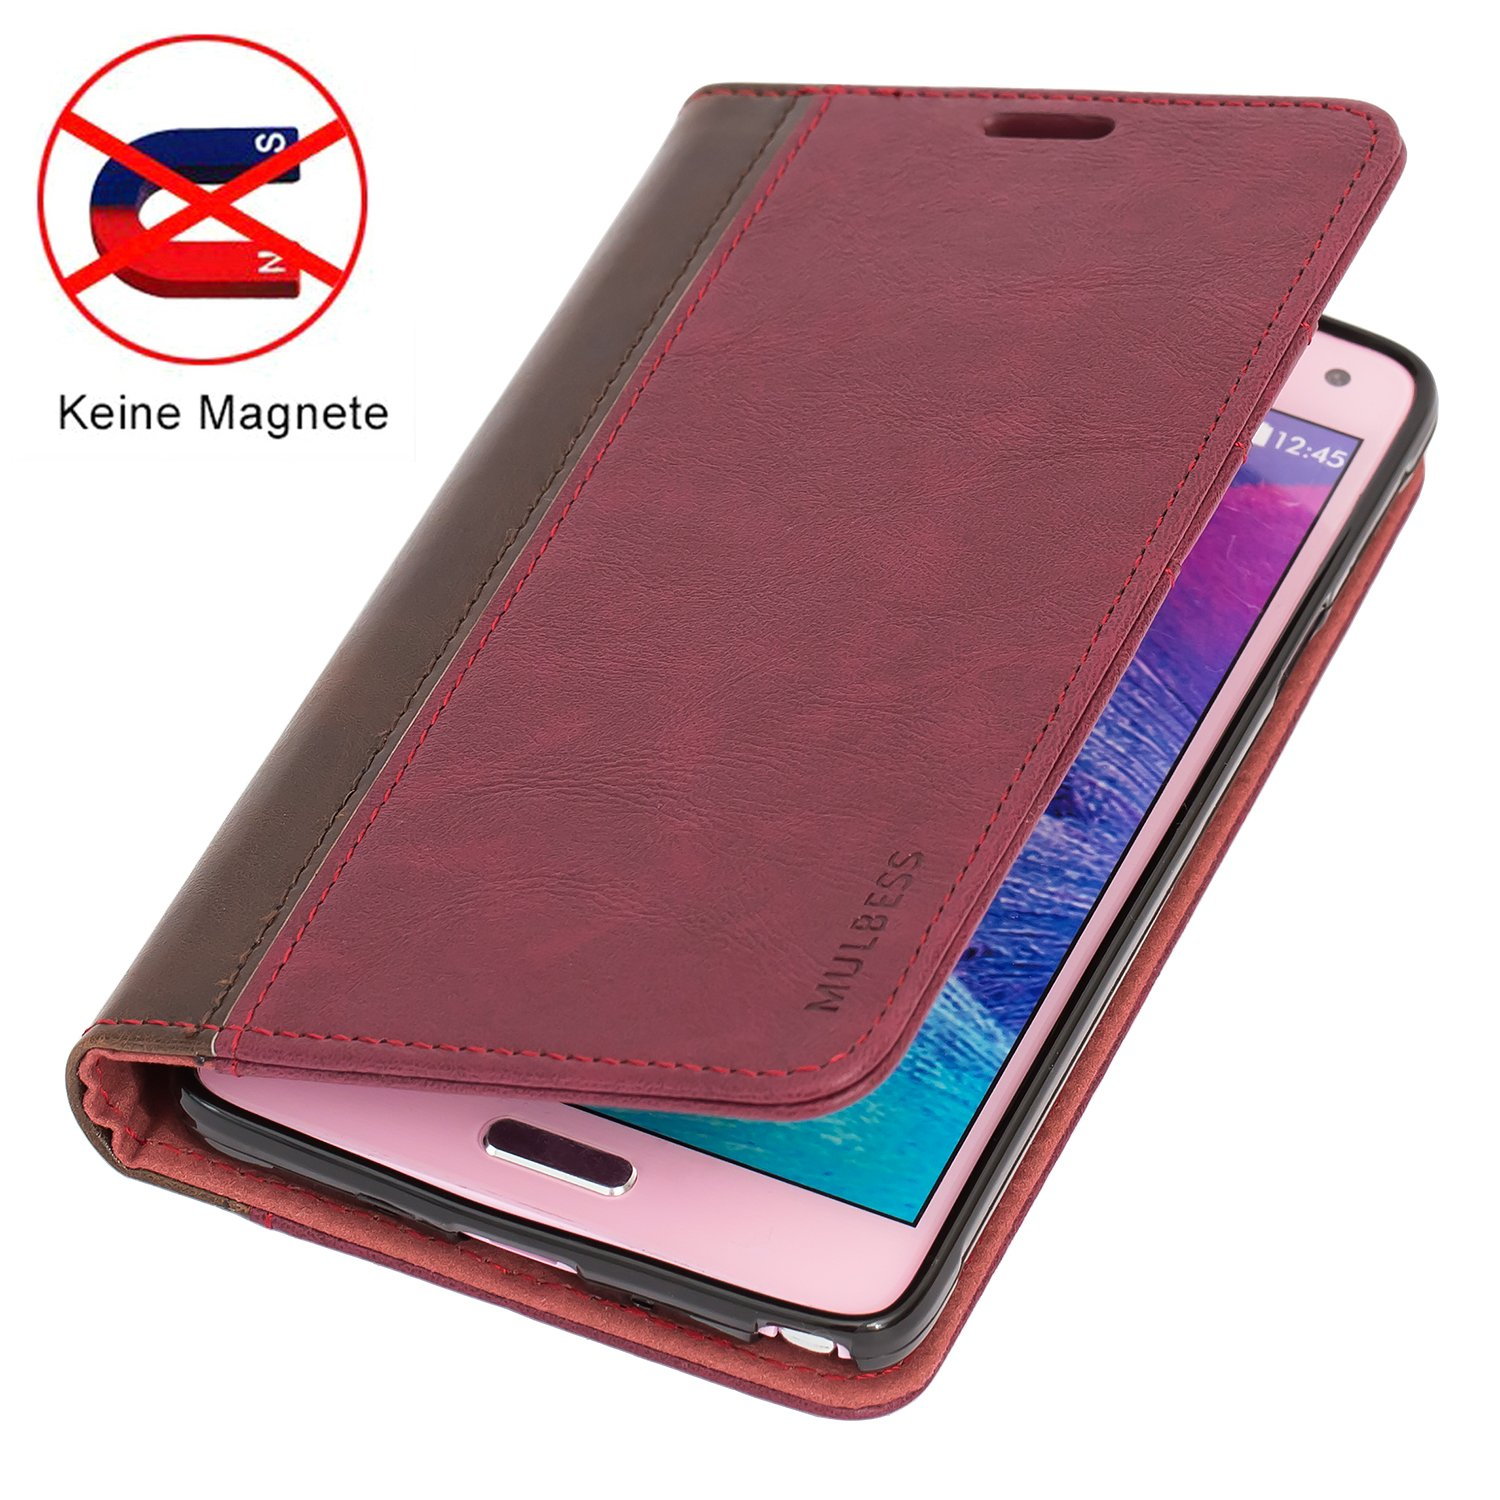 Galaxy Note 4 Casemulbess Bookstyle Leather Wallet Case Goospery Samsung J7 Plus Canvas Diary Red Cover With Kick Stand For 4wine Cell Phones Accessories